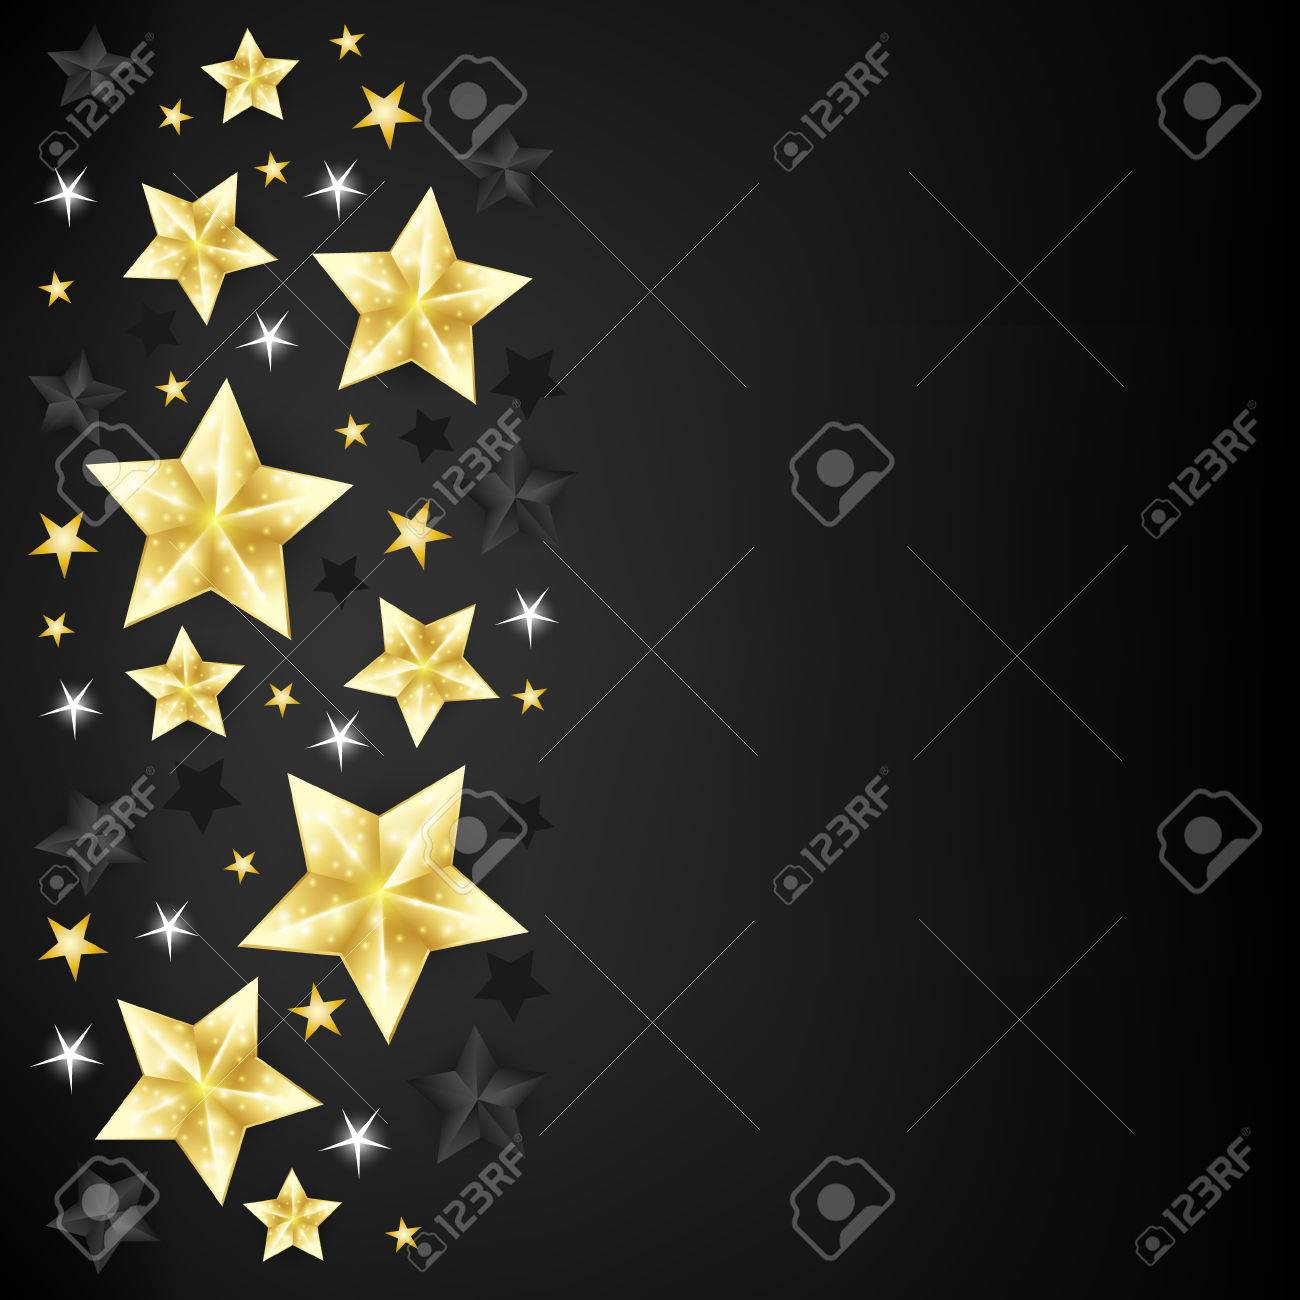 Christmas Background With Border From Gold Black And White Stars On Backdrop Copy